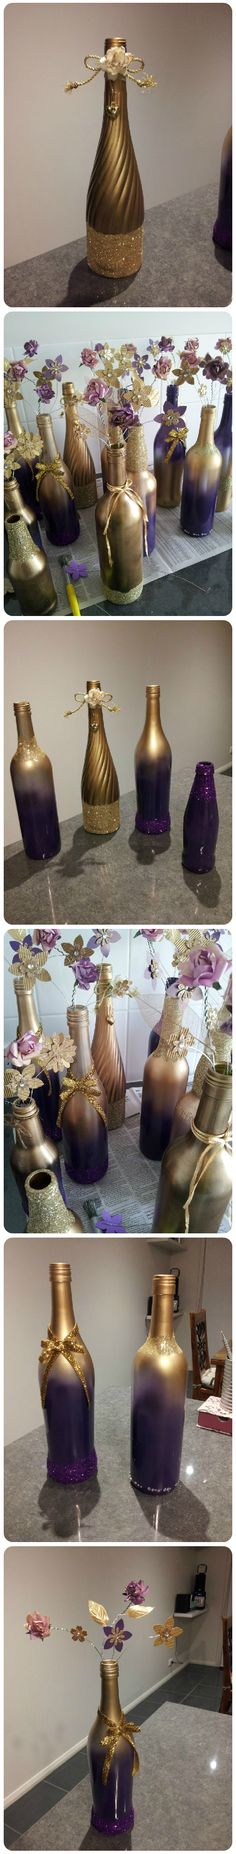 I made these table decorations for a 50th birthday party. I washed used wine and the occasional beer bottle. Spray painted them, added glitter and decorations. I made the flowers by hand and attached them to wire, then arranged them in the bottle.